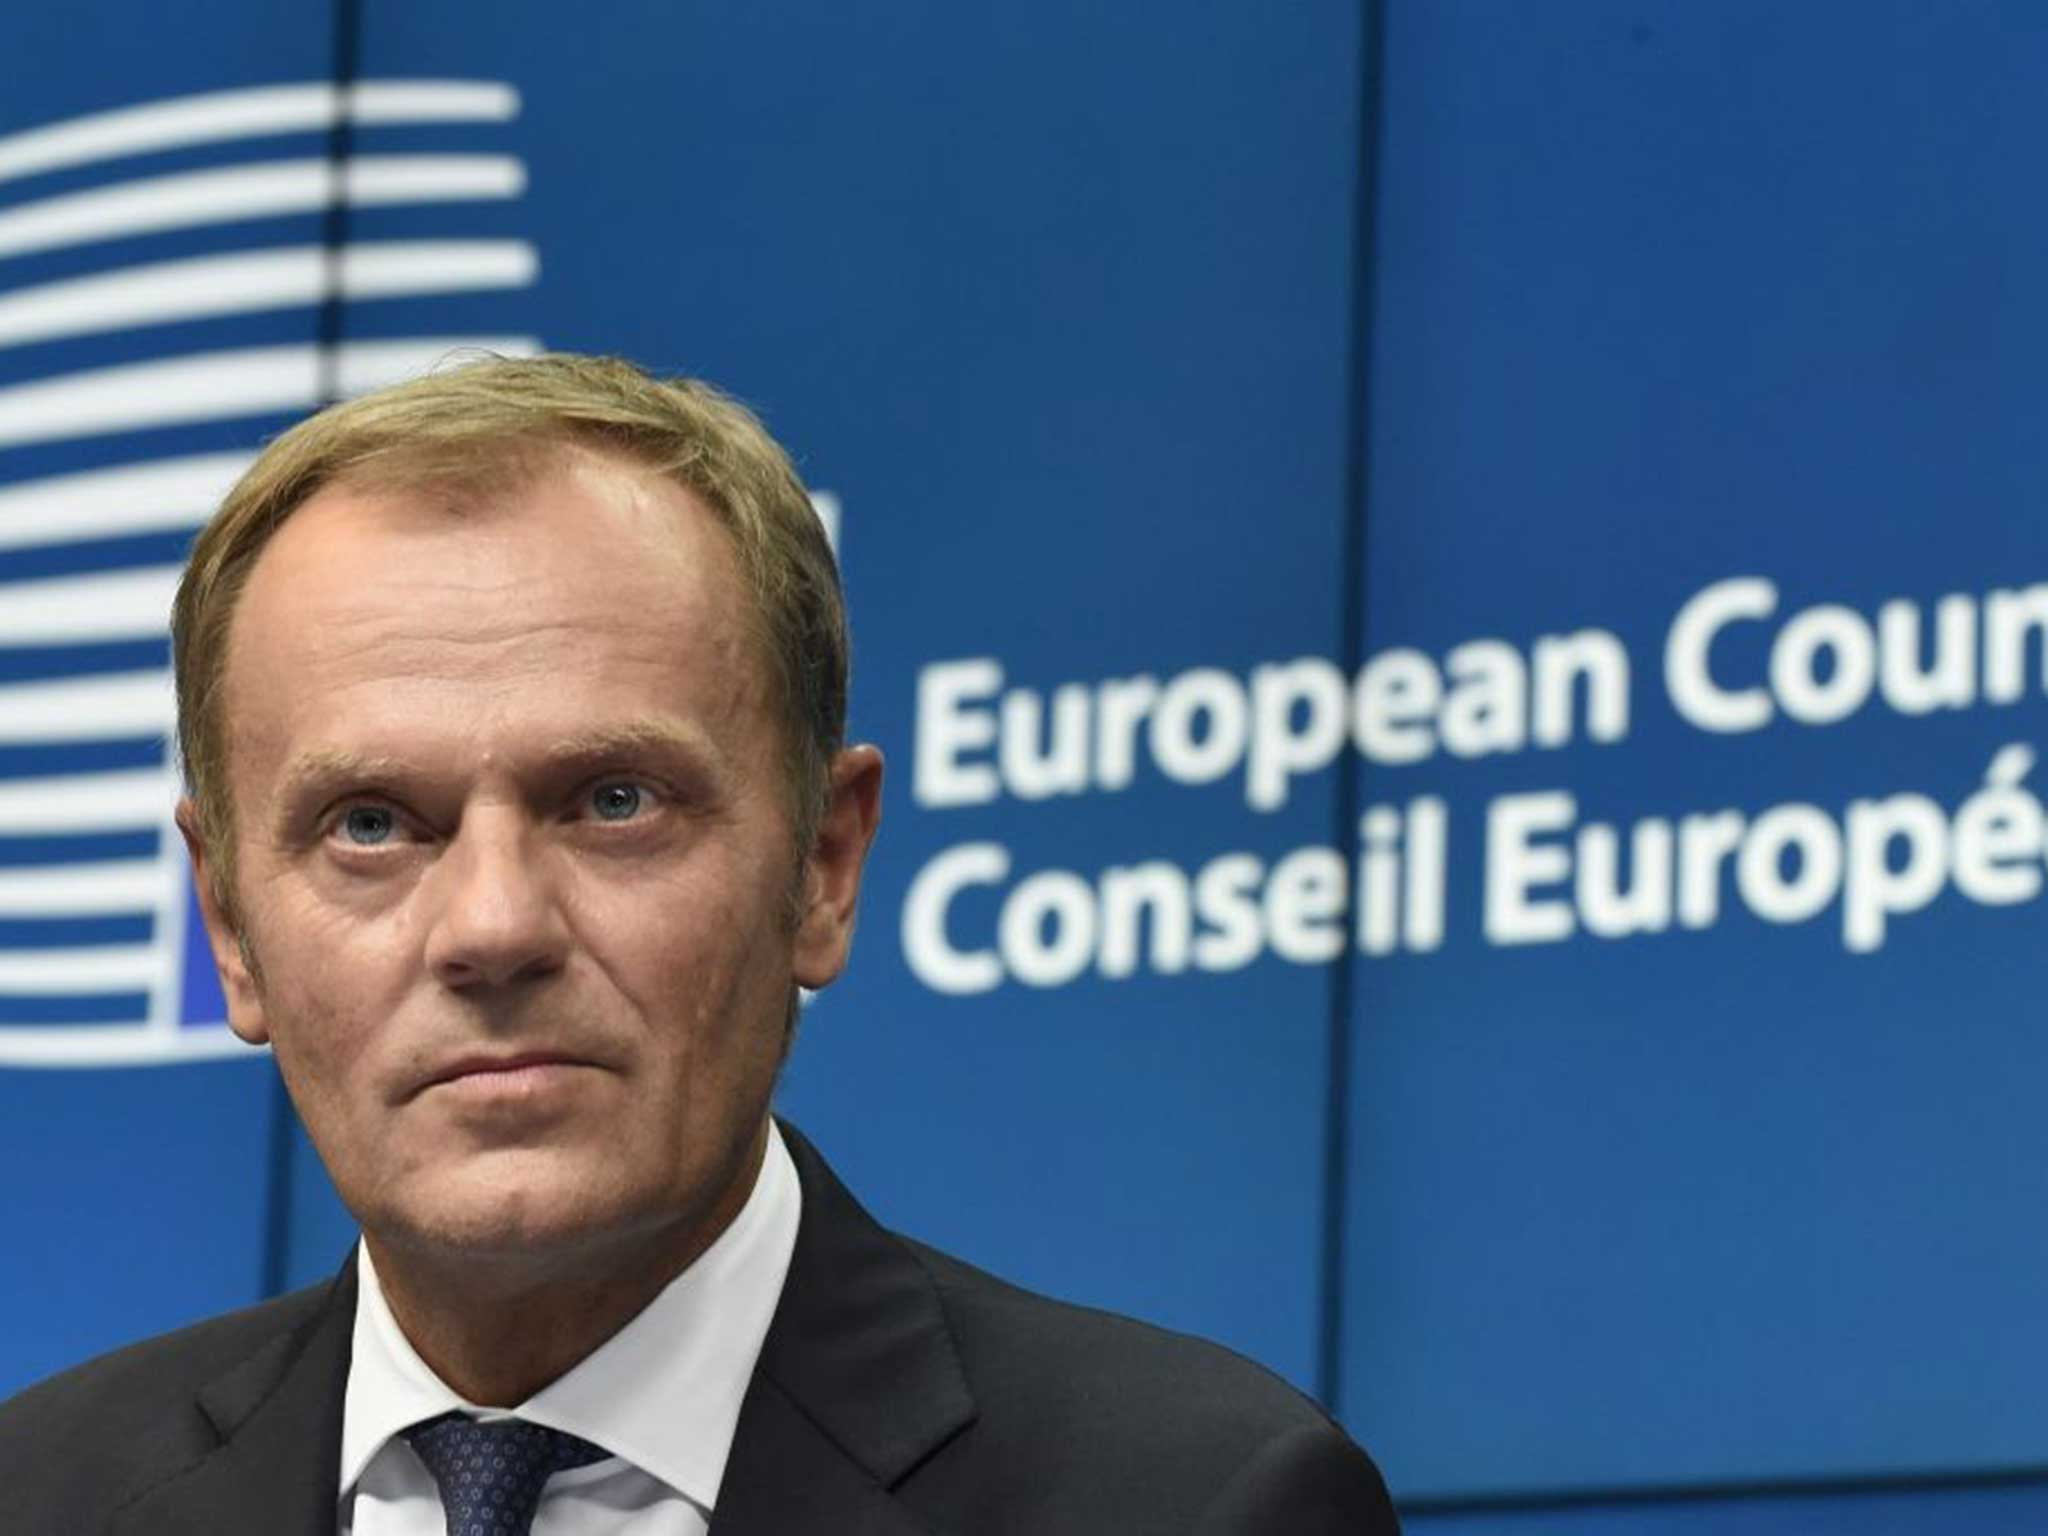 New European Council President 'determined' to keep Britain in the EU ...